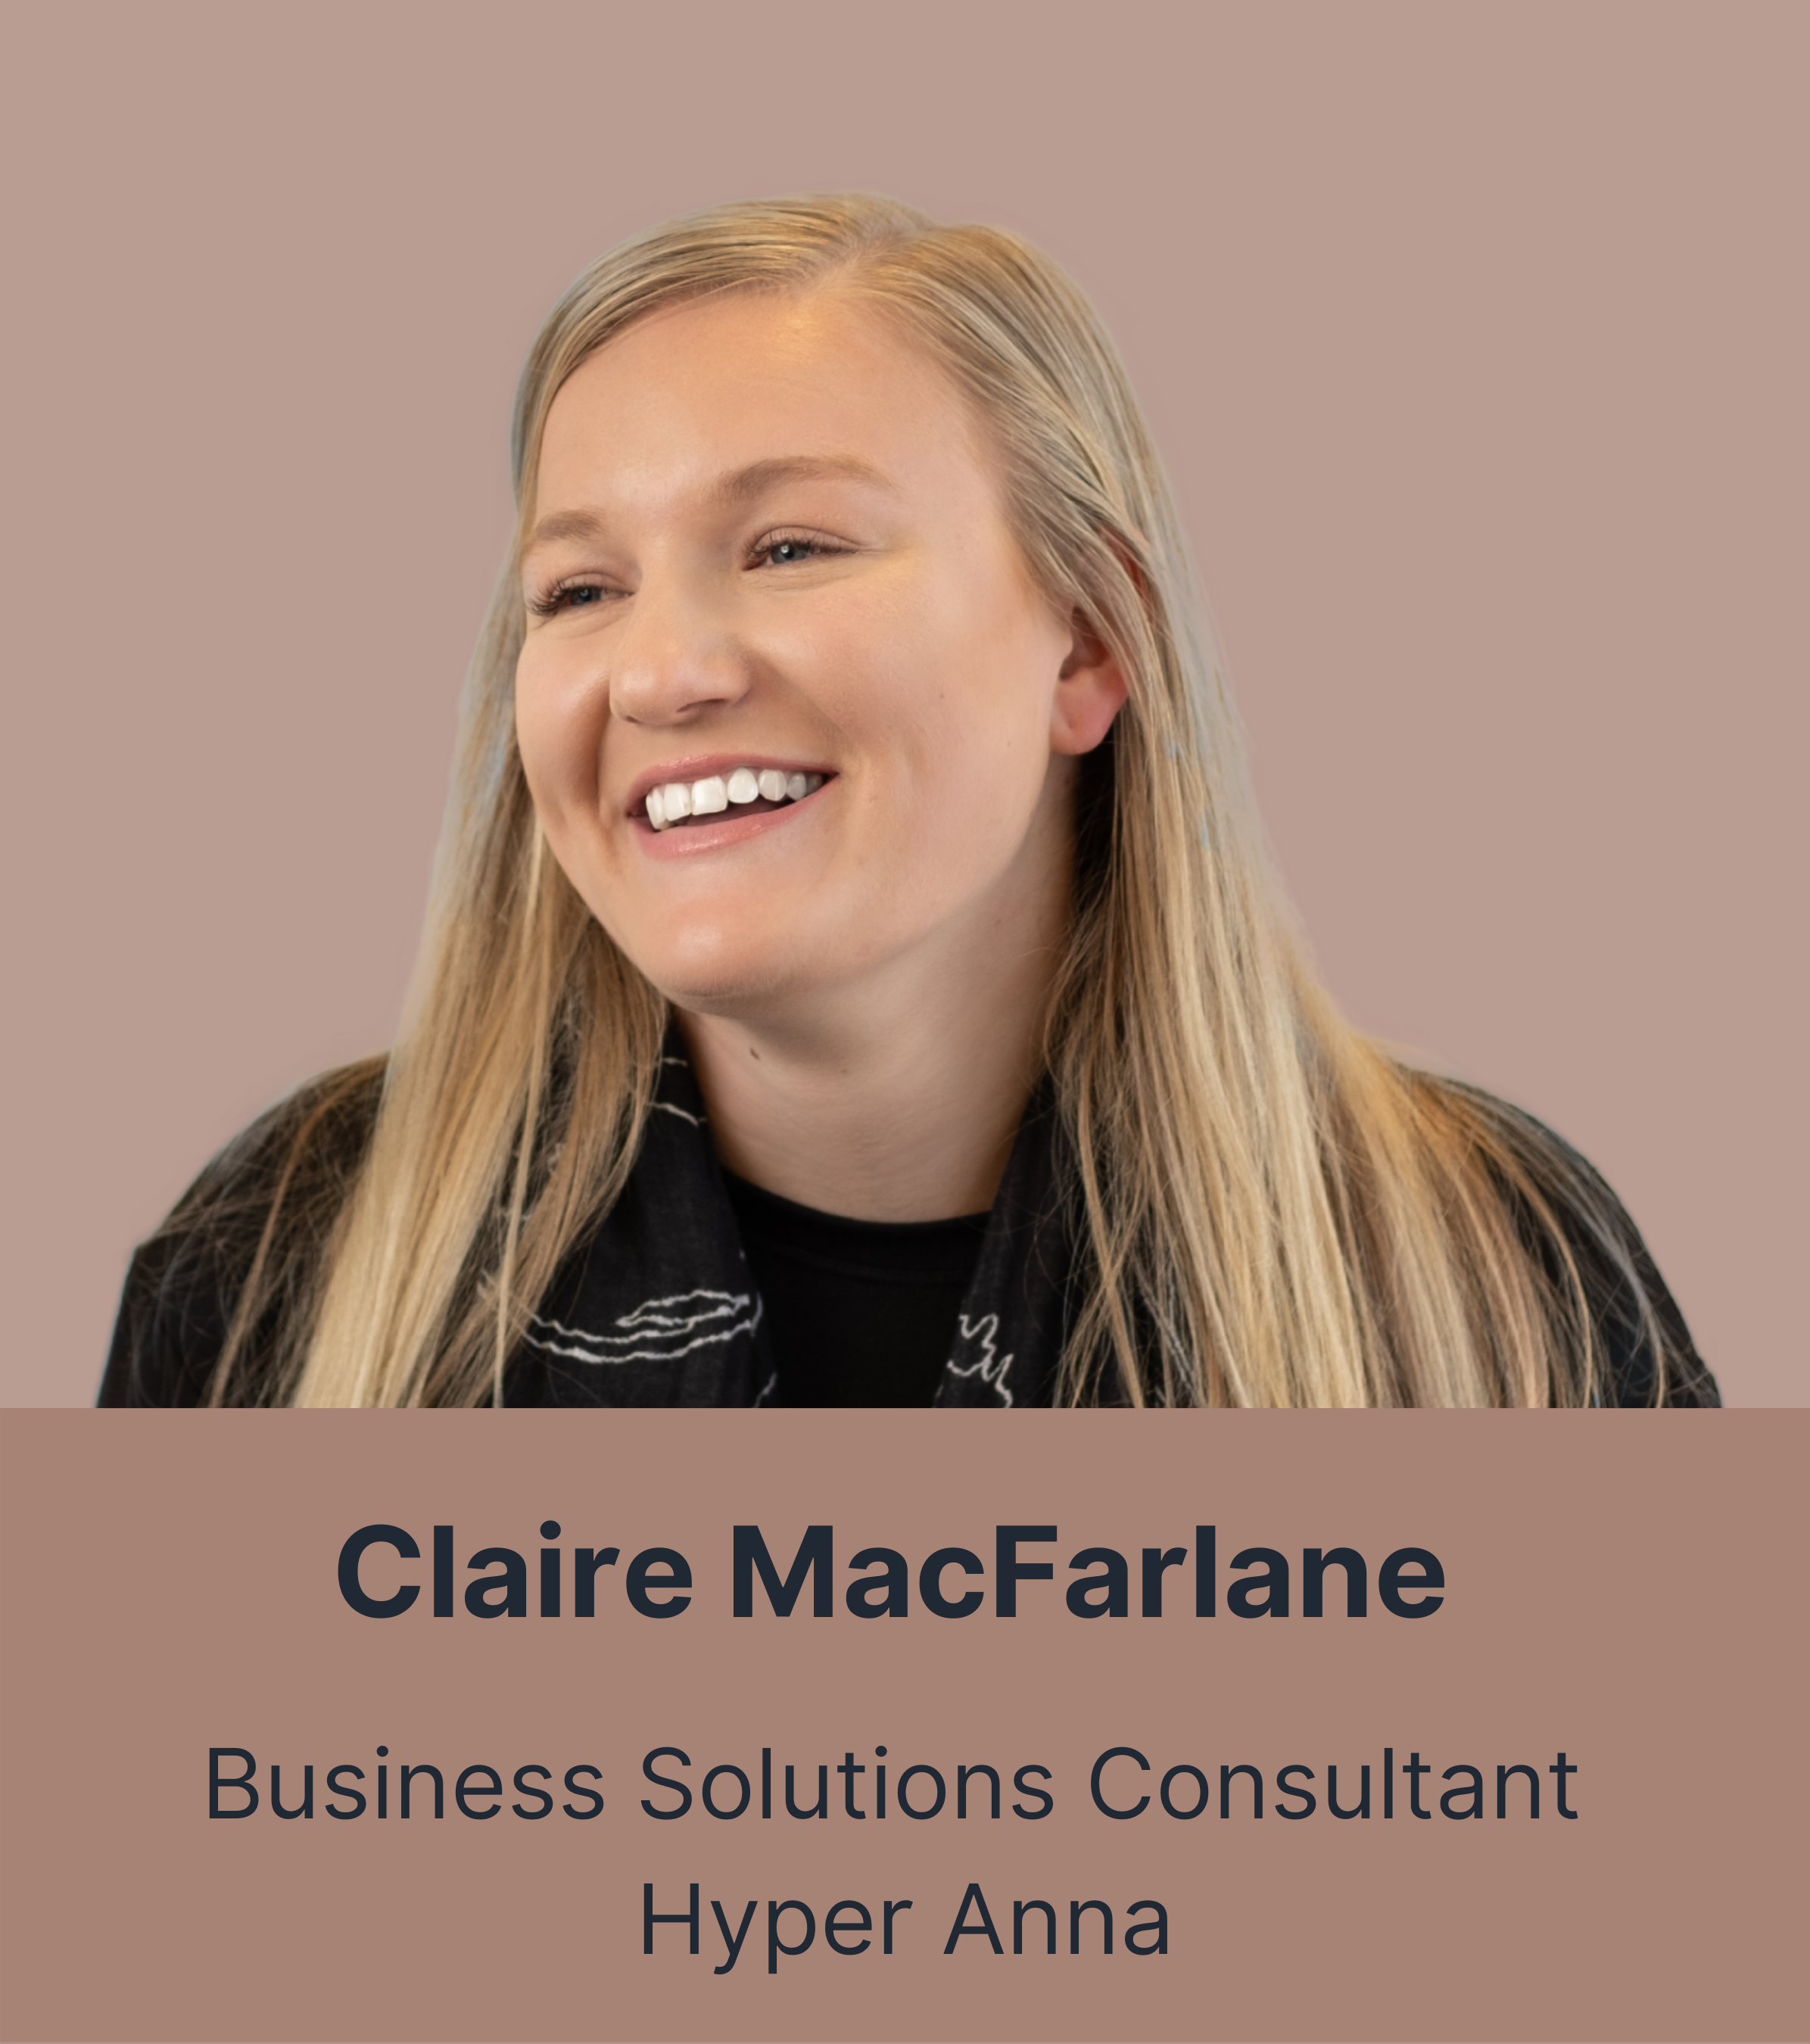 Claire MacFarlane - Business Solutions Consultant